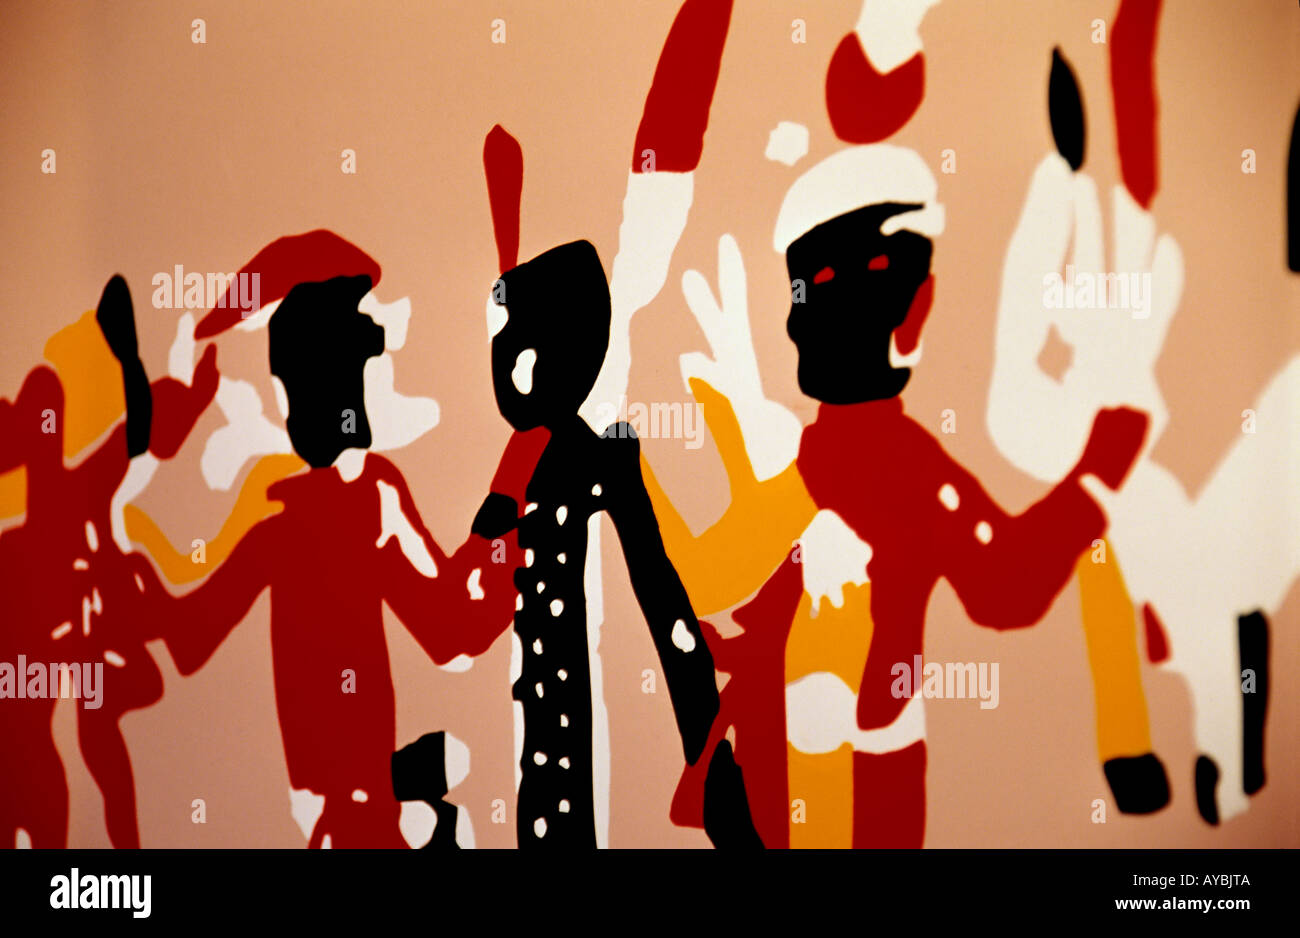 Mural in the visitors center at Gran Quivira Ruins, Salinas Pueblo Missions National Monument,  New Mexico. - Stock Image